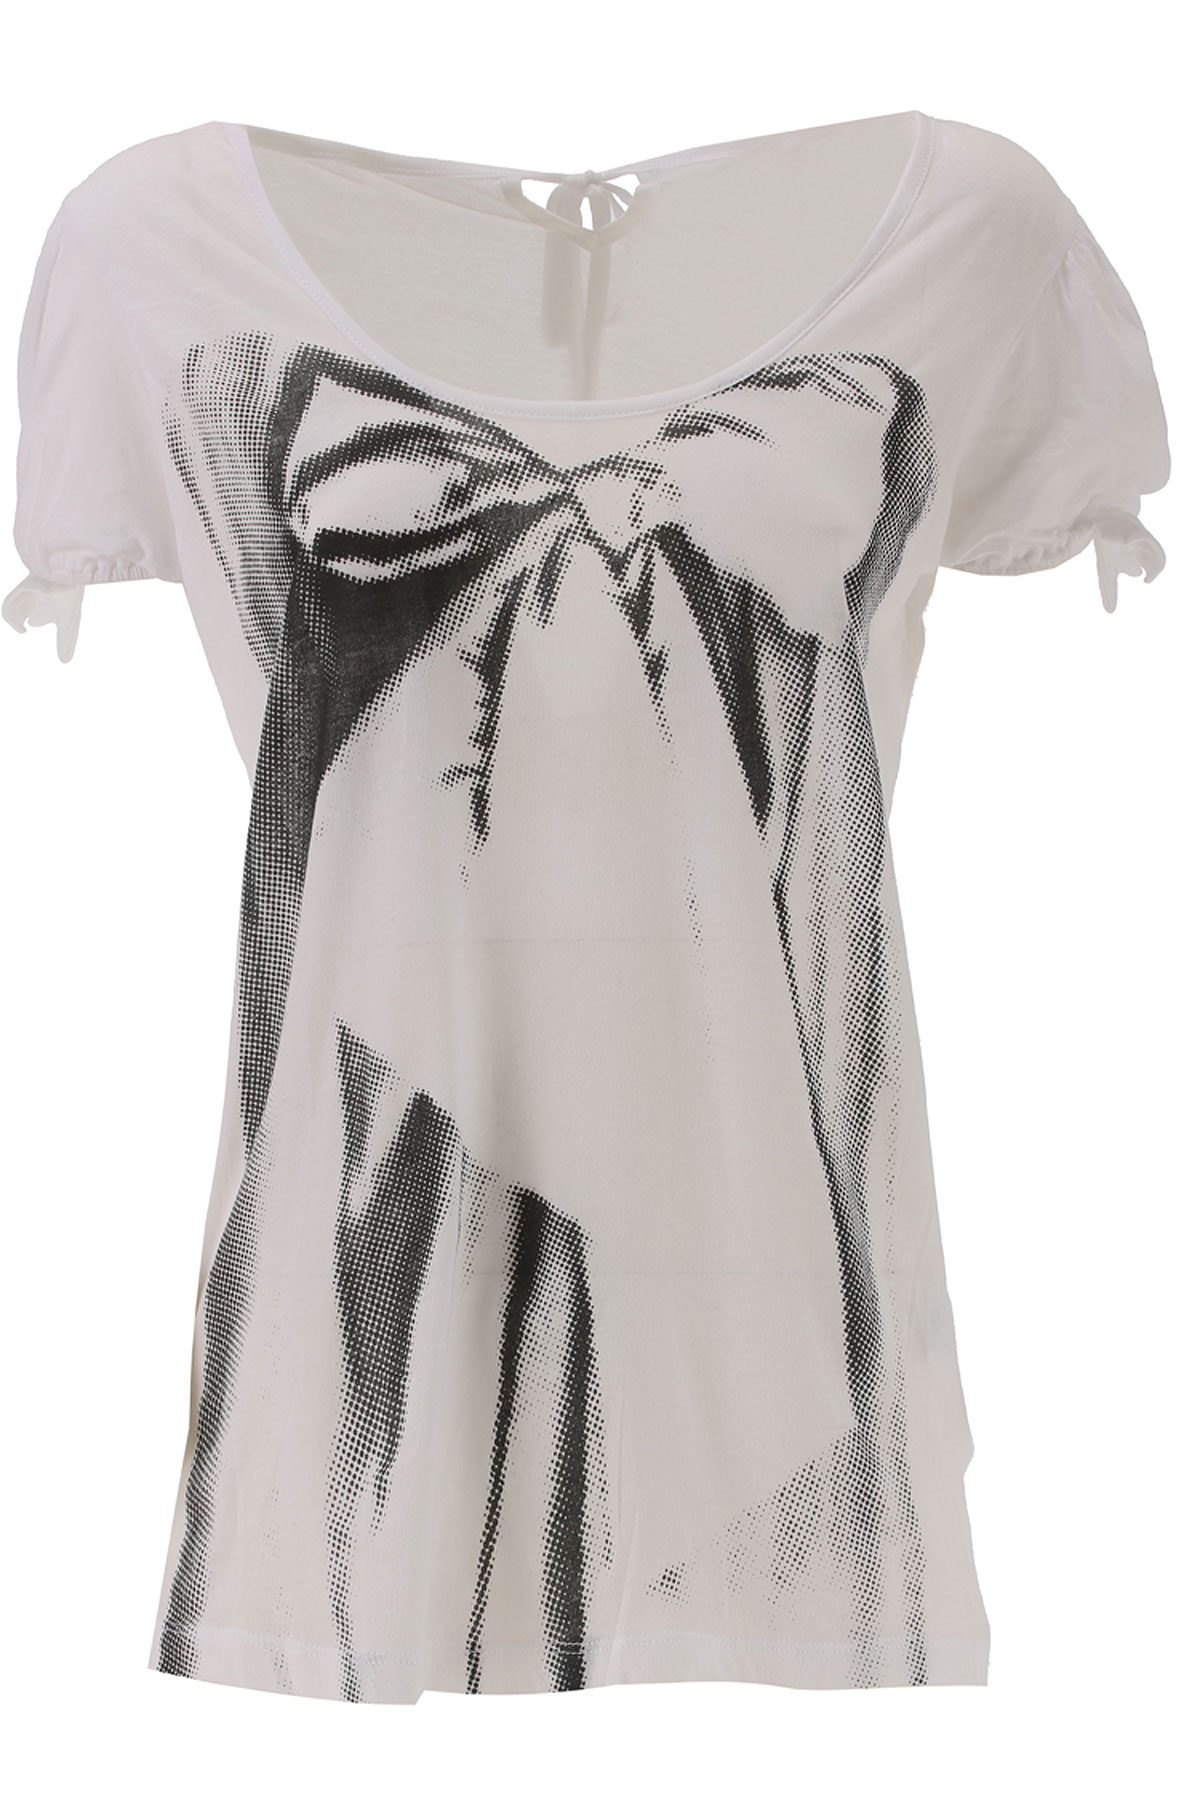 Image of JC de CASTELBAJAC T-Shirt for Women On Sale, White, white, 2017, 4 6 8